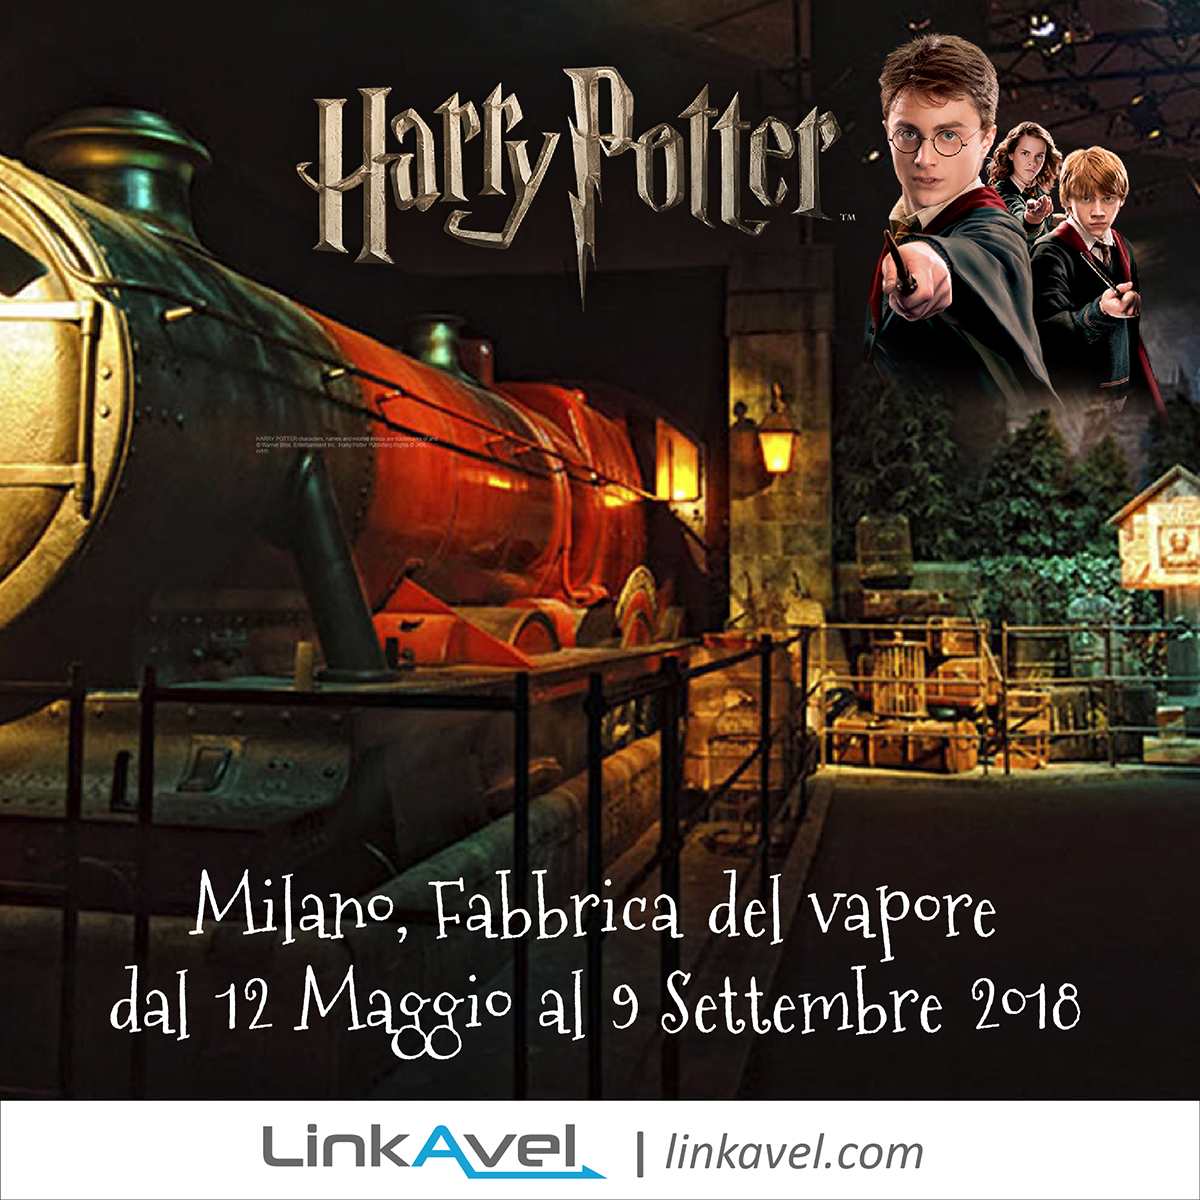 Mostra Harry Potter, Milano 2018